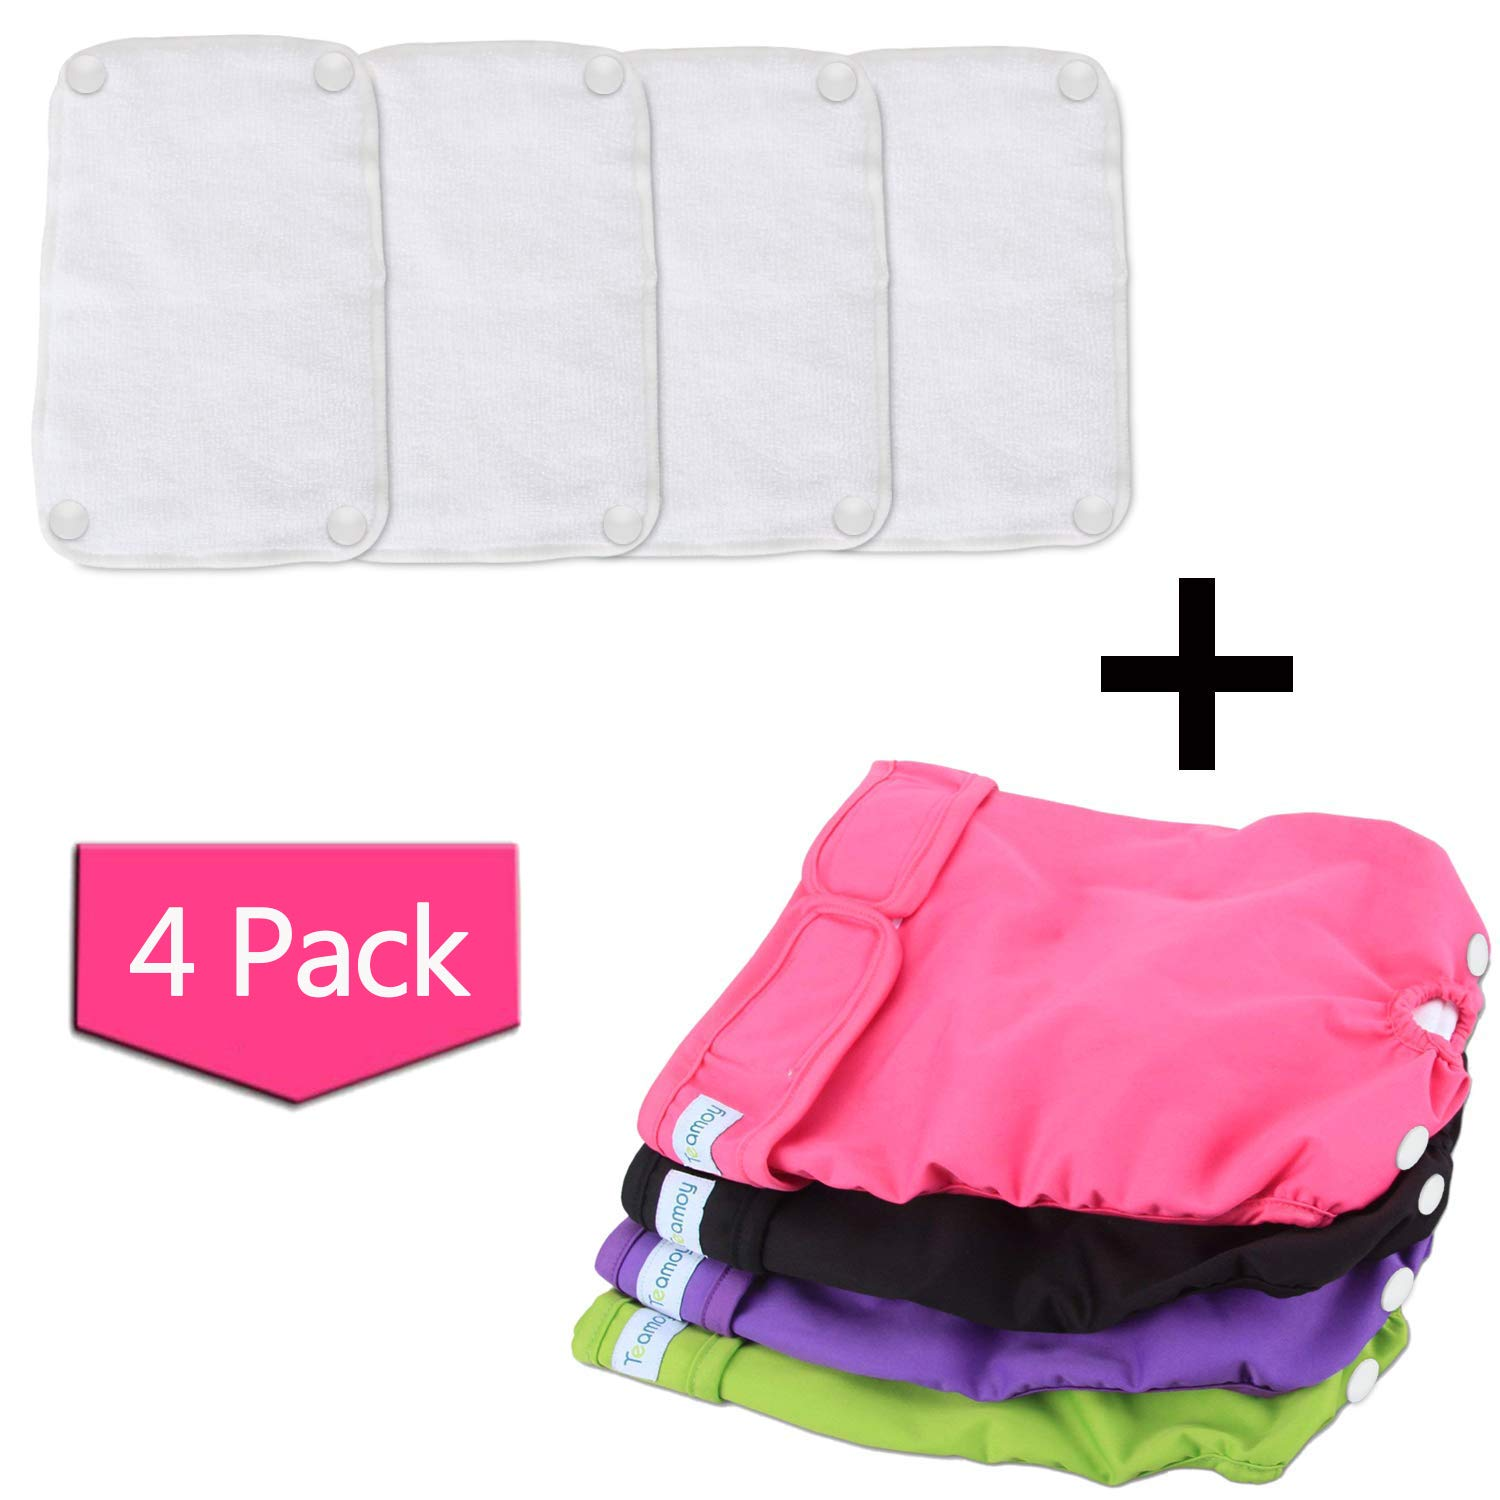 Teamoy Reusable Female Dog Diapers with Removable Pads(Pack of 4), Washable Doggie Diaper Wraps for Female Dogs, Super-Absorbent, Comfortable and Stylish, L by Teamoy